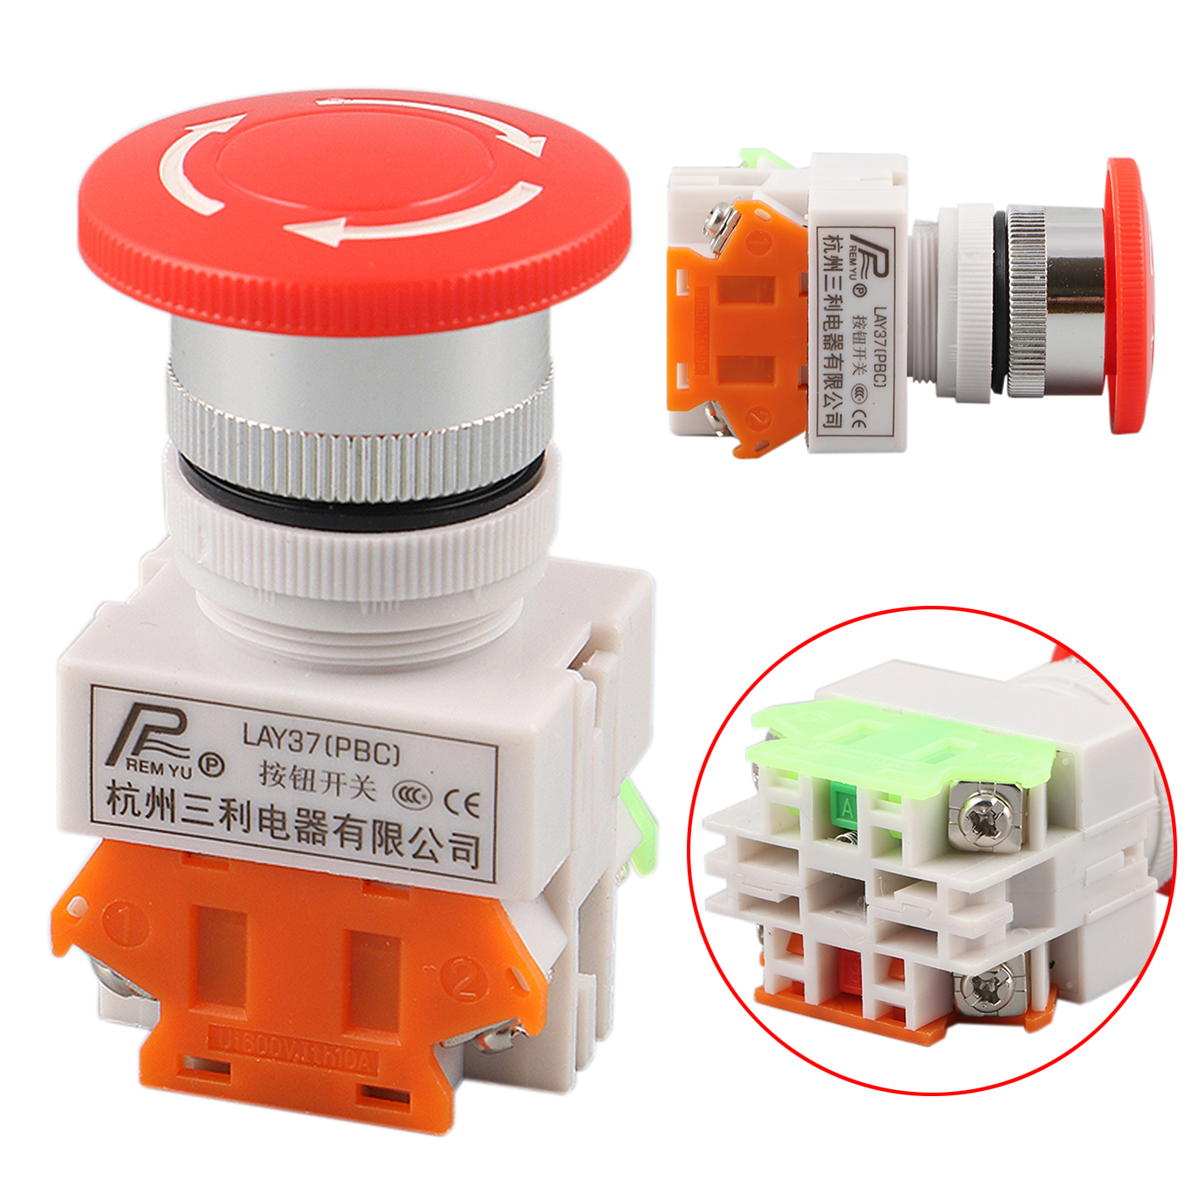 Red Sign Mushroom Emergency Stop Push Button Switch 4 Screw Terminal DPST Double-Pole-Single-Throw 600V 10A 1pc new emergency stop push button switch self locking red mushroom switch 660v 10a